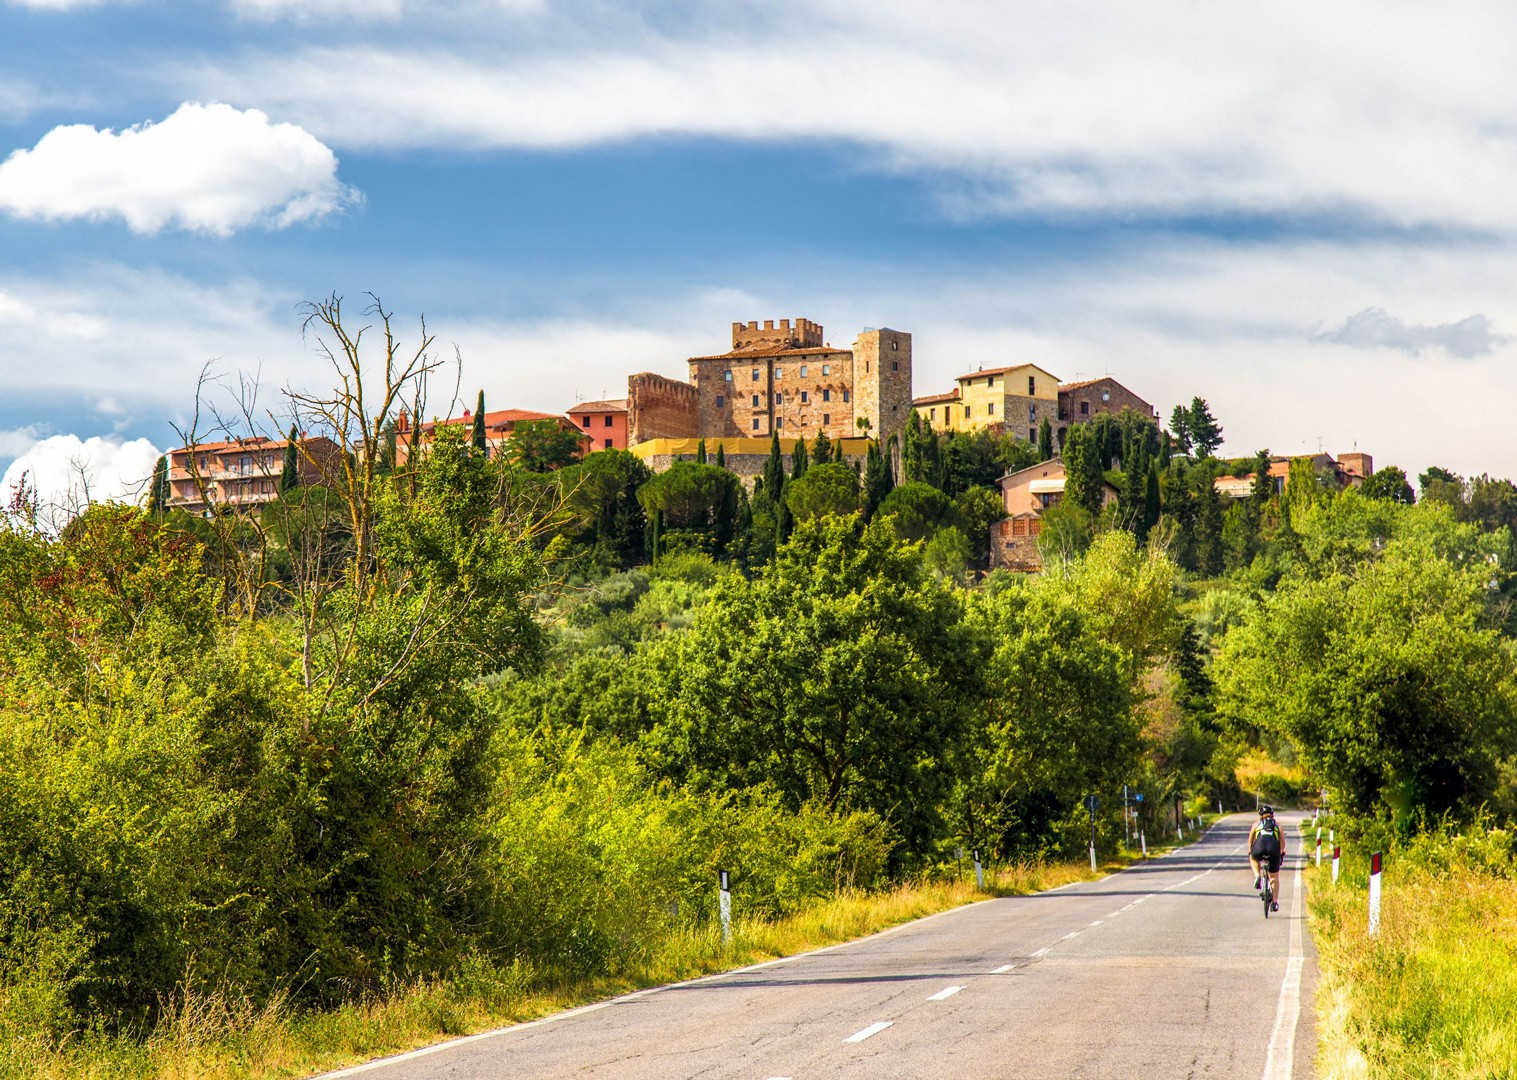 0356 Day 6 Casole D'Elsa.jpg - Italy - Tuscany Tourer - Road Cycling